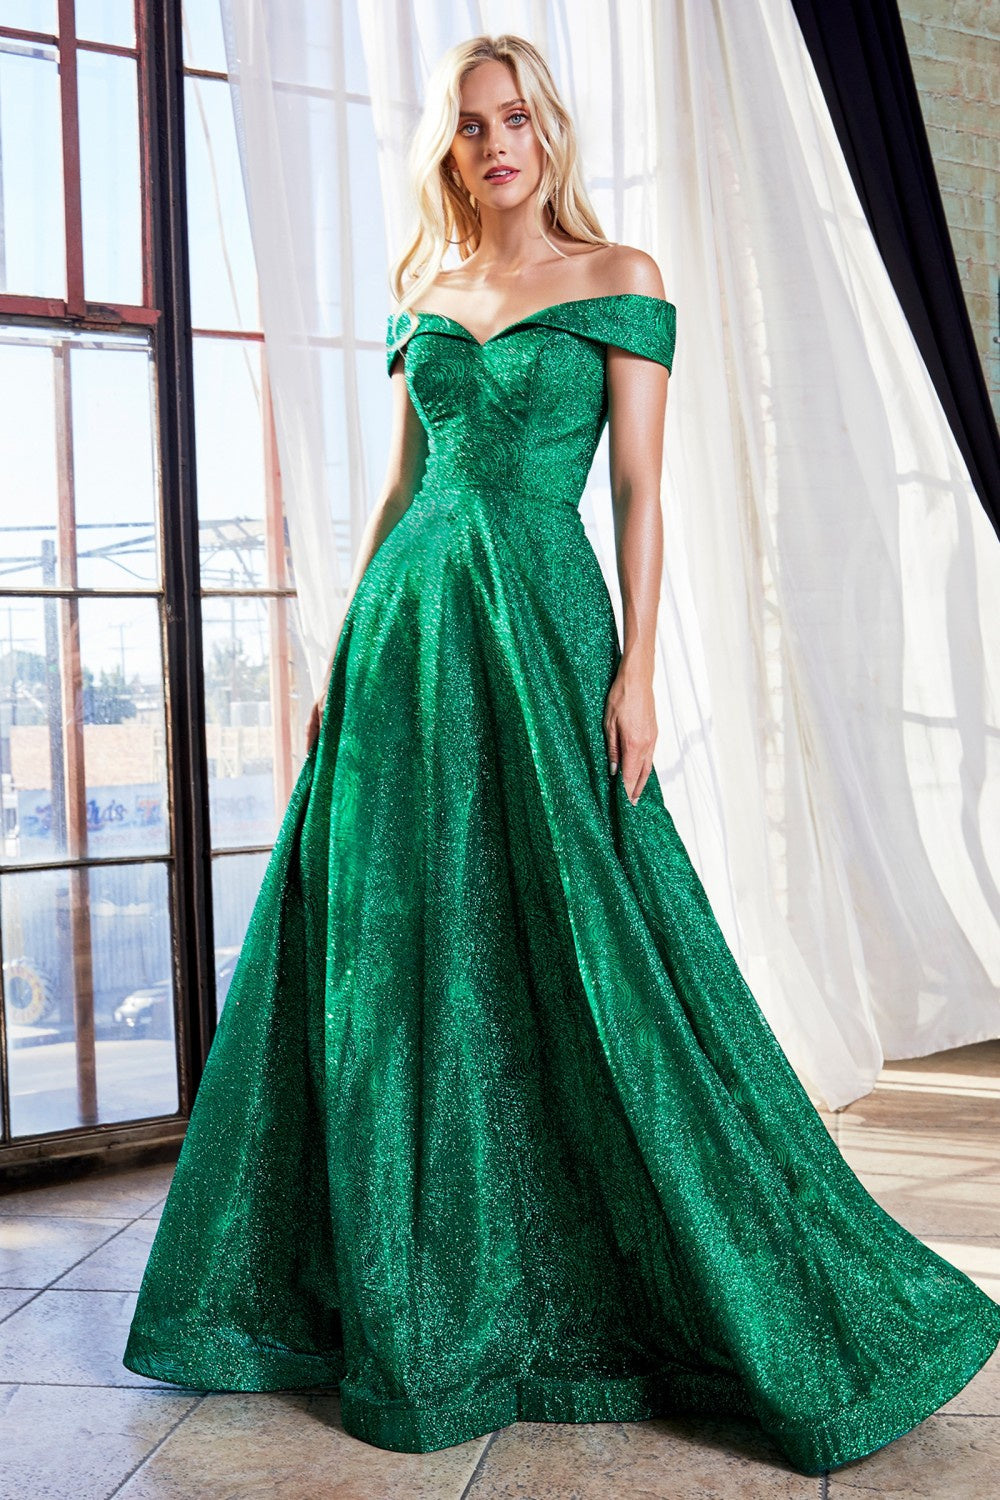 EMERALD Off the shoulder ball gown with glitter print